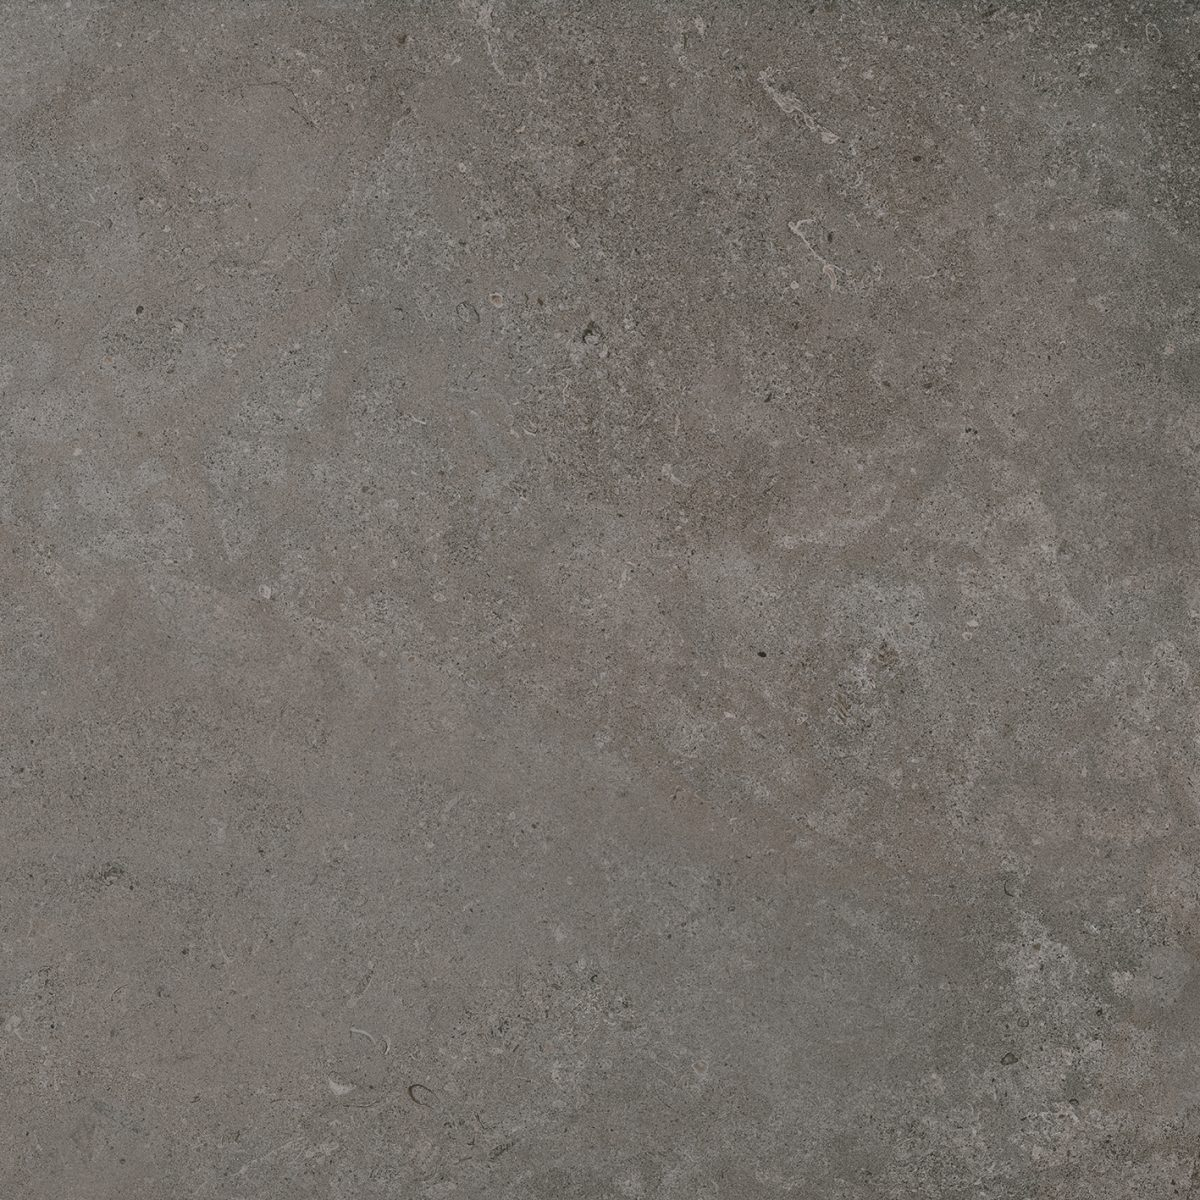 Porcelanosa Mosa-River Grey Tile 120 x 120 cm